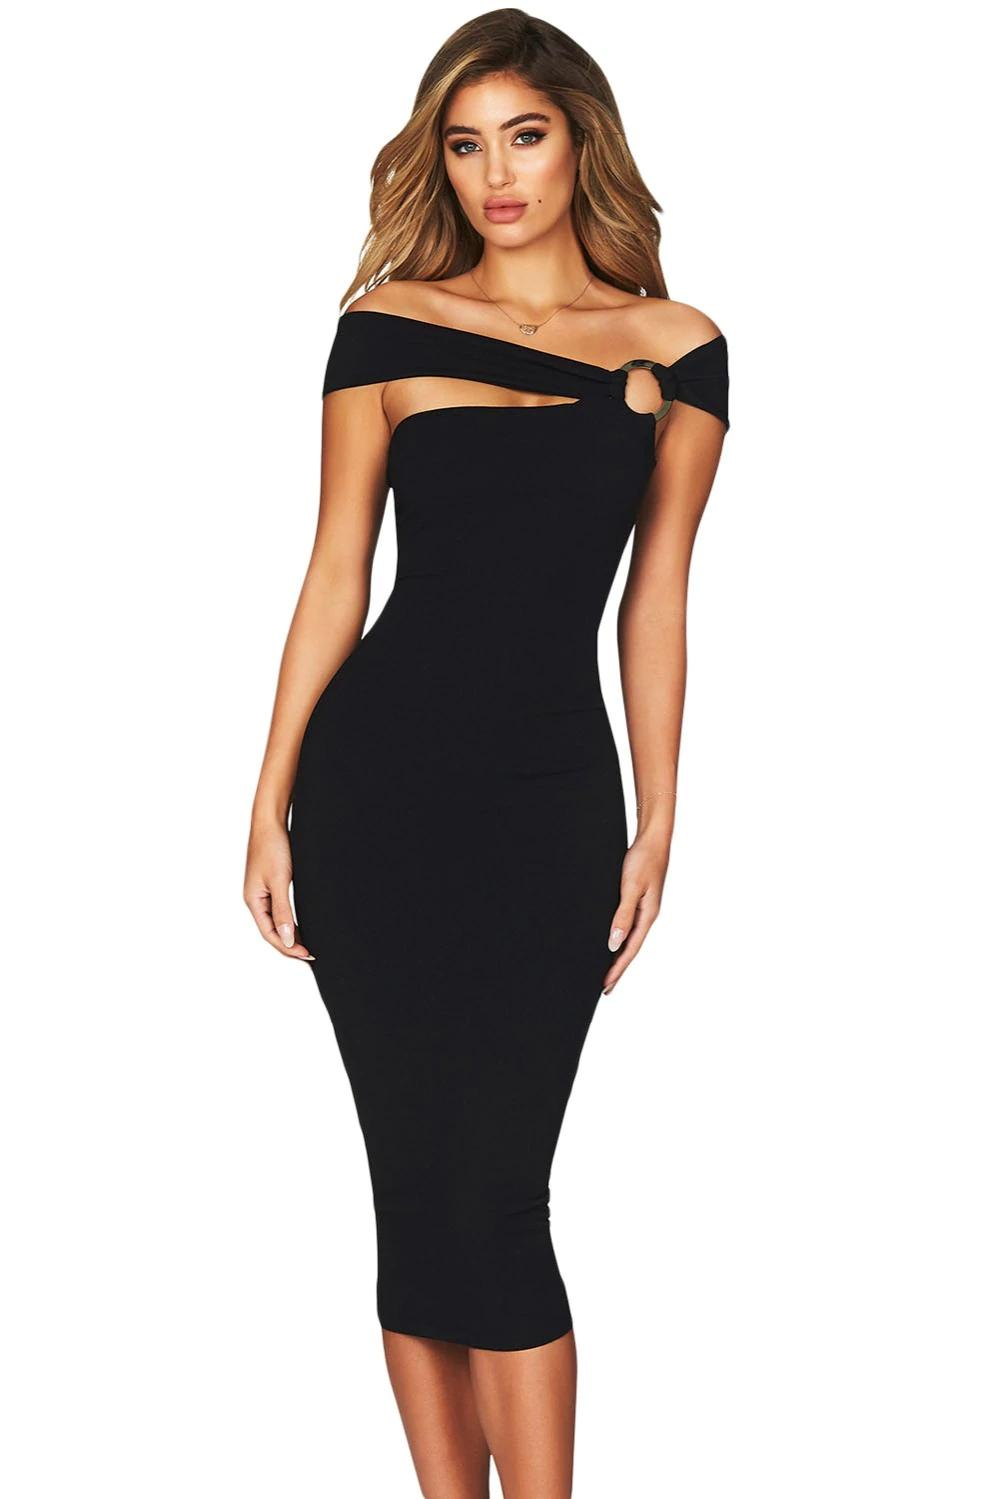 1a1397afd1da0 New Summer Dress 2019 Women Sexy Slim Club Black Elegant Off Shoulder  Bodycon Midi Party Dress Vestidos De Festa Lc610561